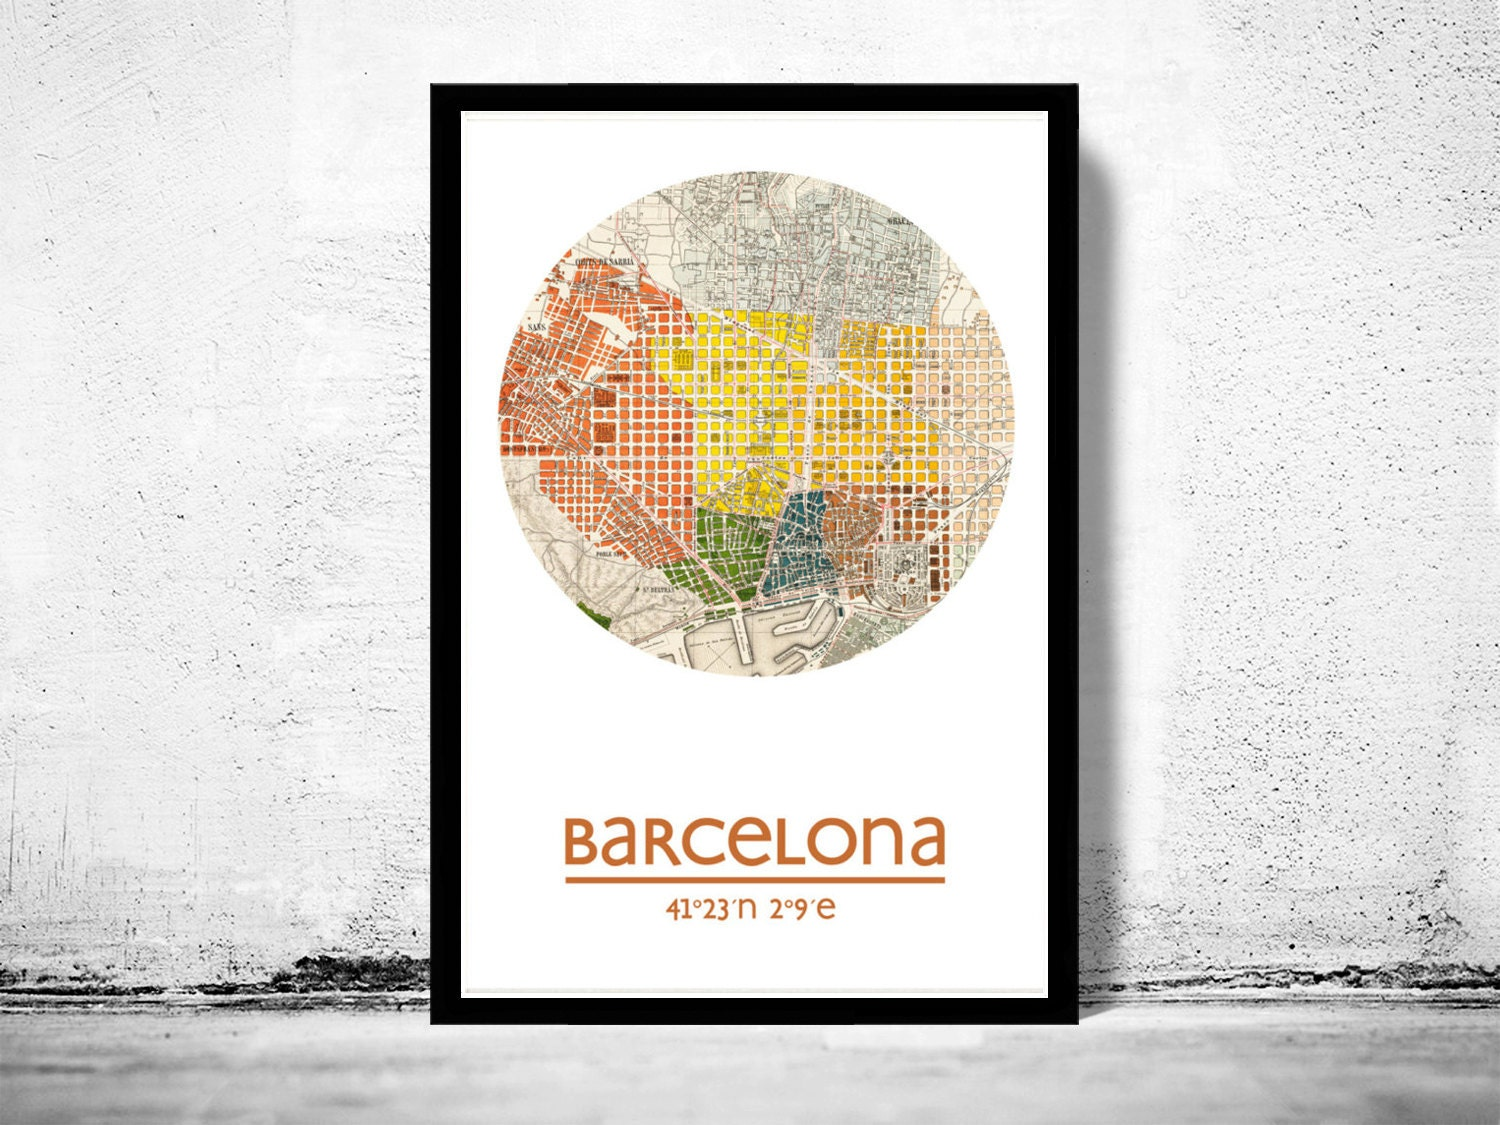 barcelone affiche de ville ville carte copie daffiche. Black Bedroom Furniture Sets. Home Design Ideas